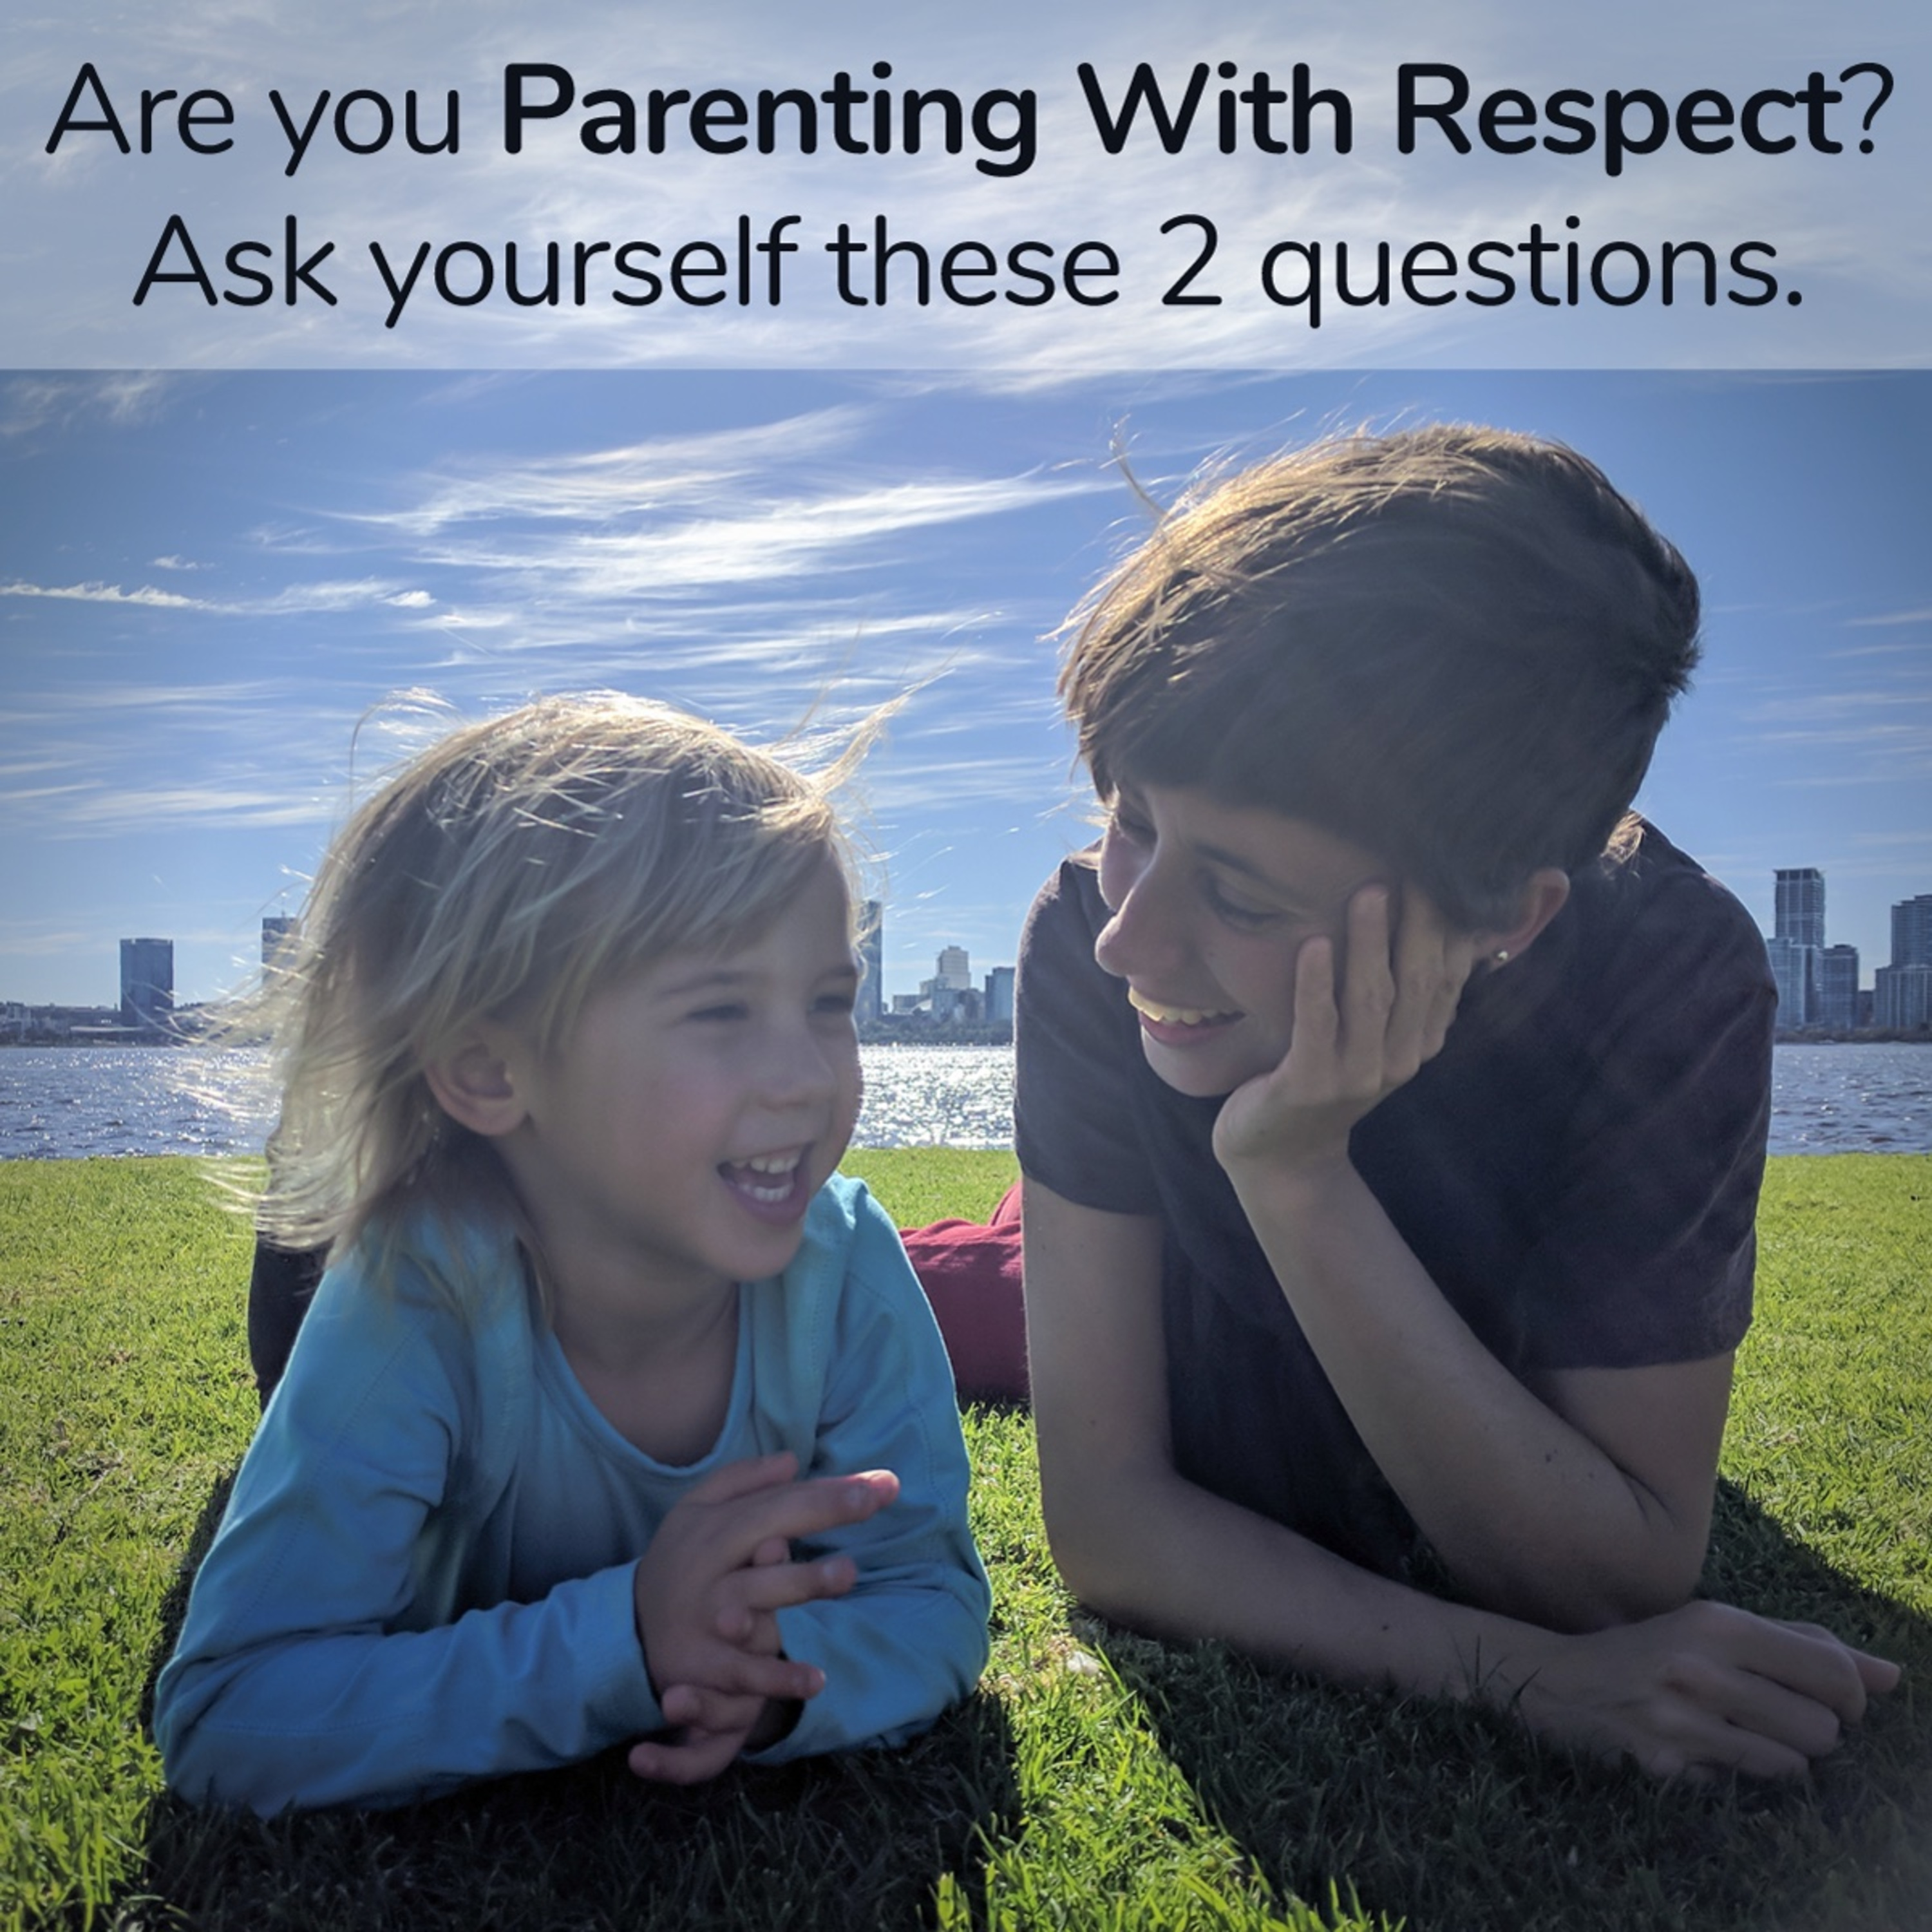 Are you PARENTING with RESPECT?